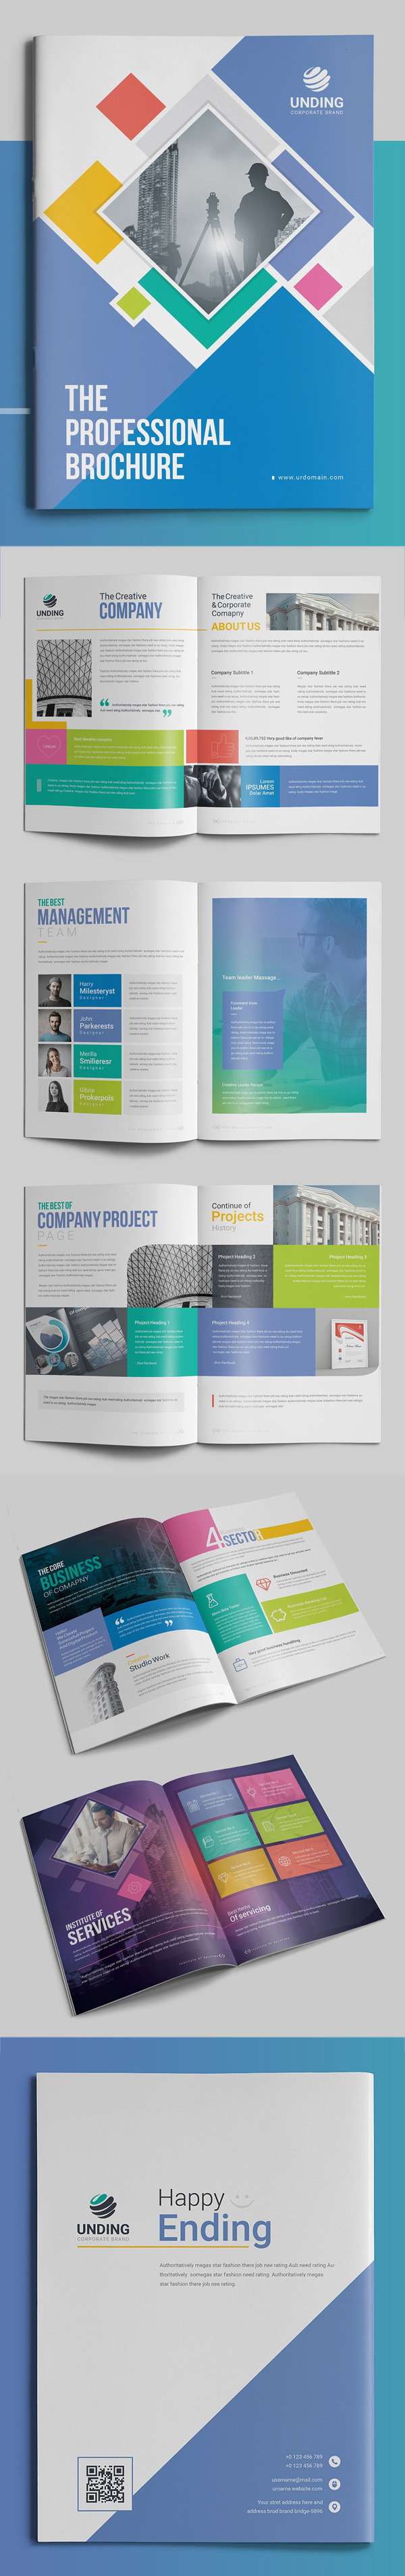 100 Professional Corporate Brochure Templates - 54